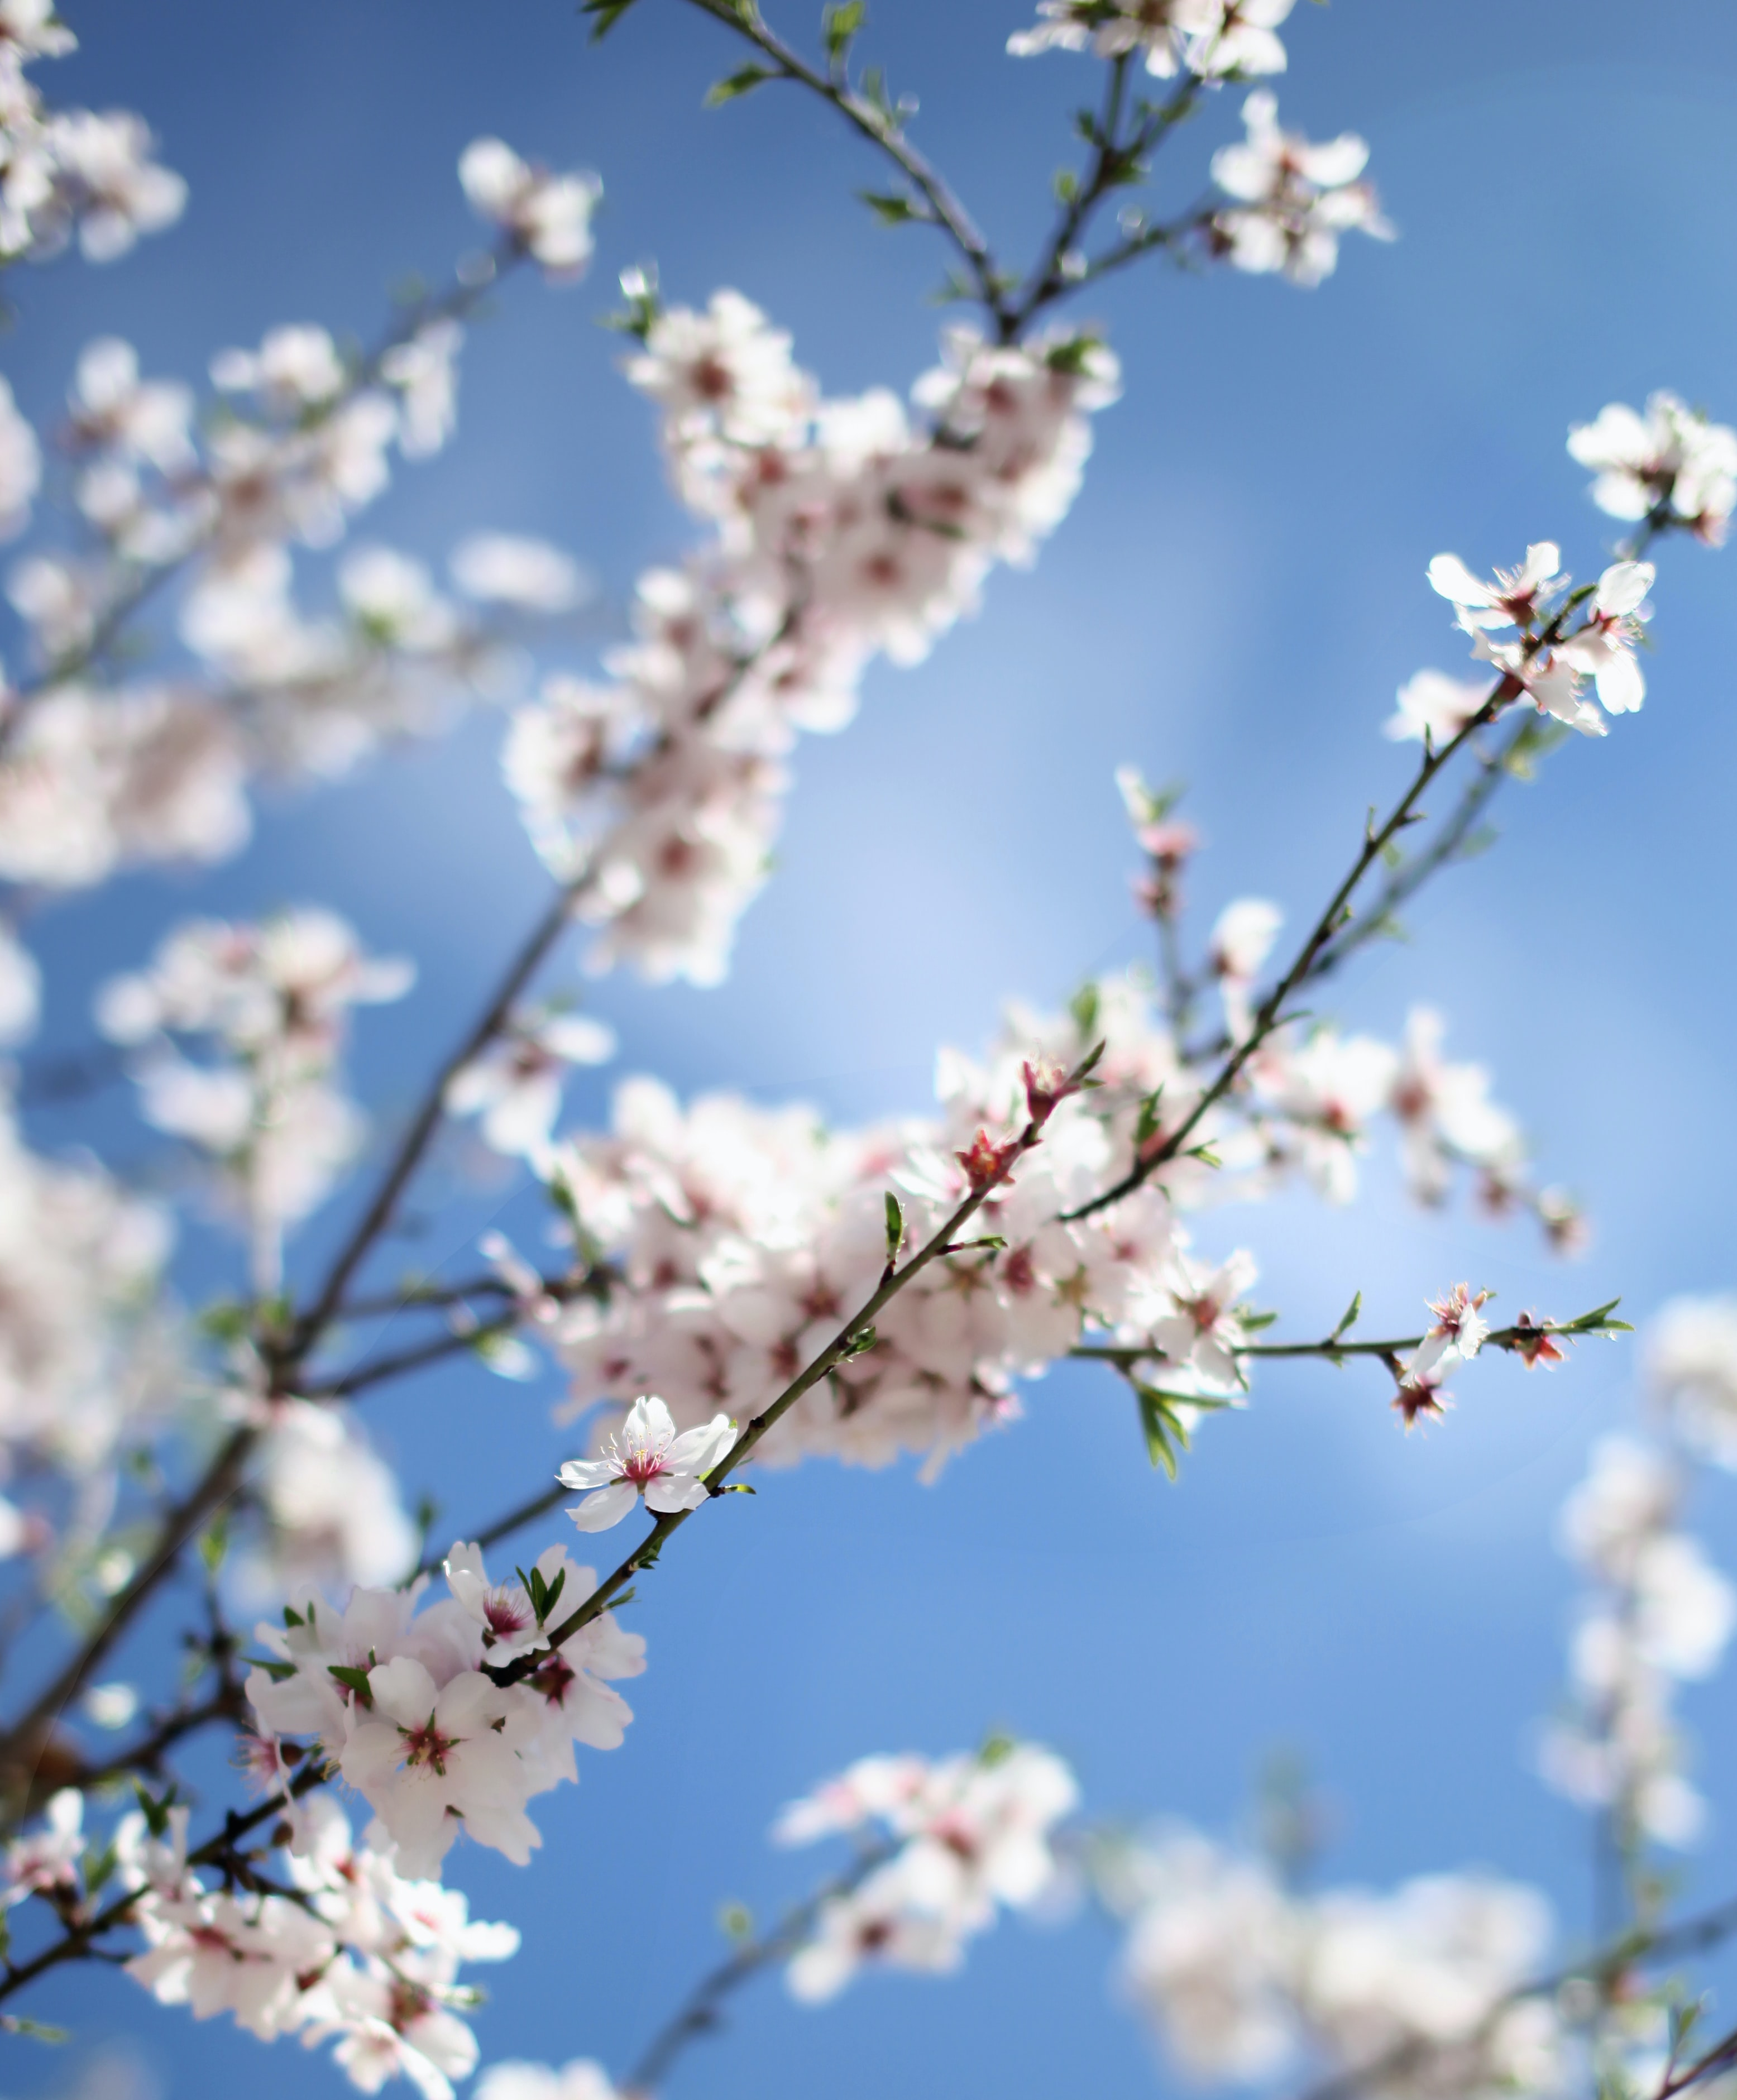 Close up of branch with blossom flower with clear blue sky background in Spring